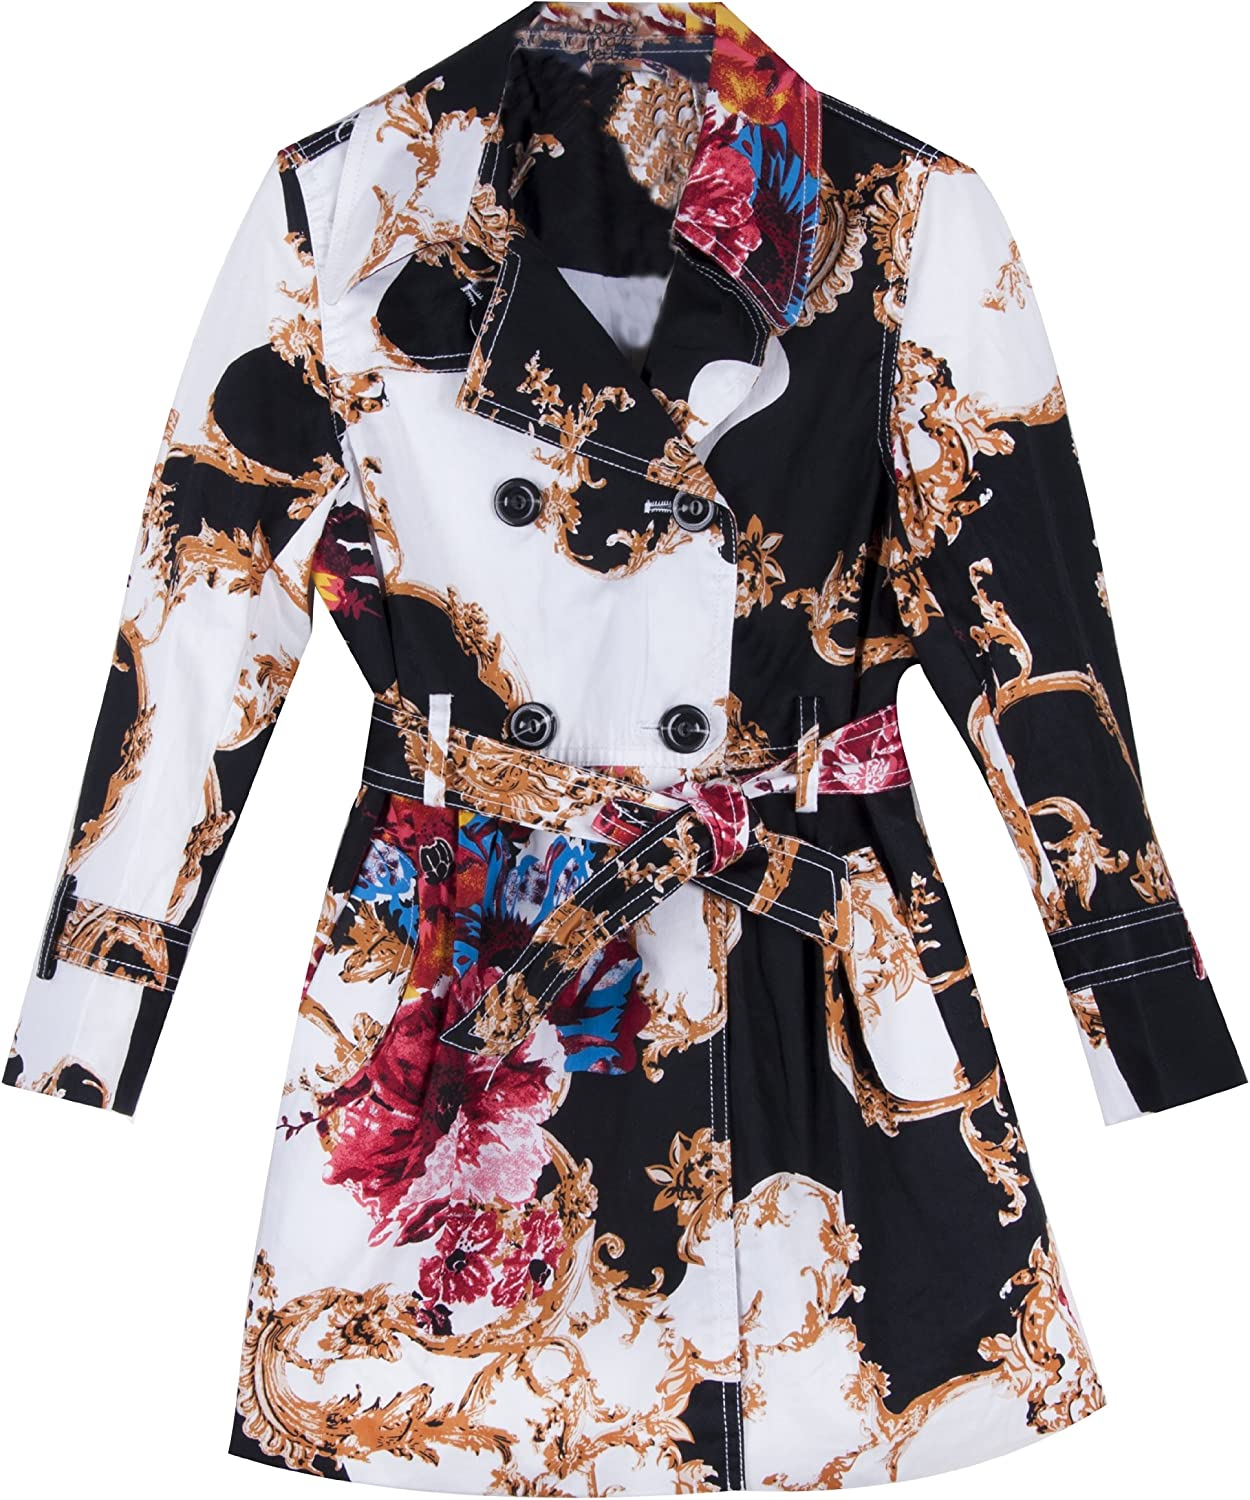 Richie House Big Girls' Patterened Trench Coat Rh0741